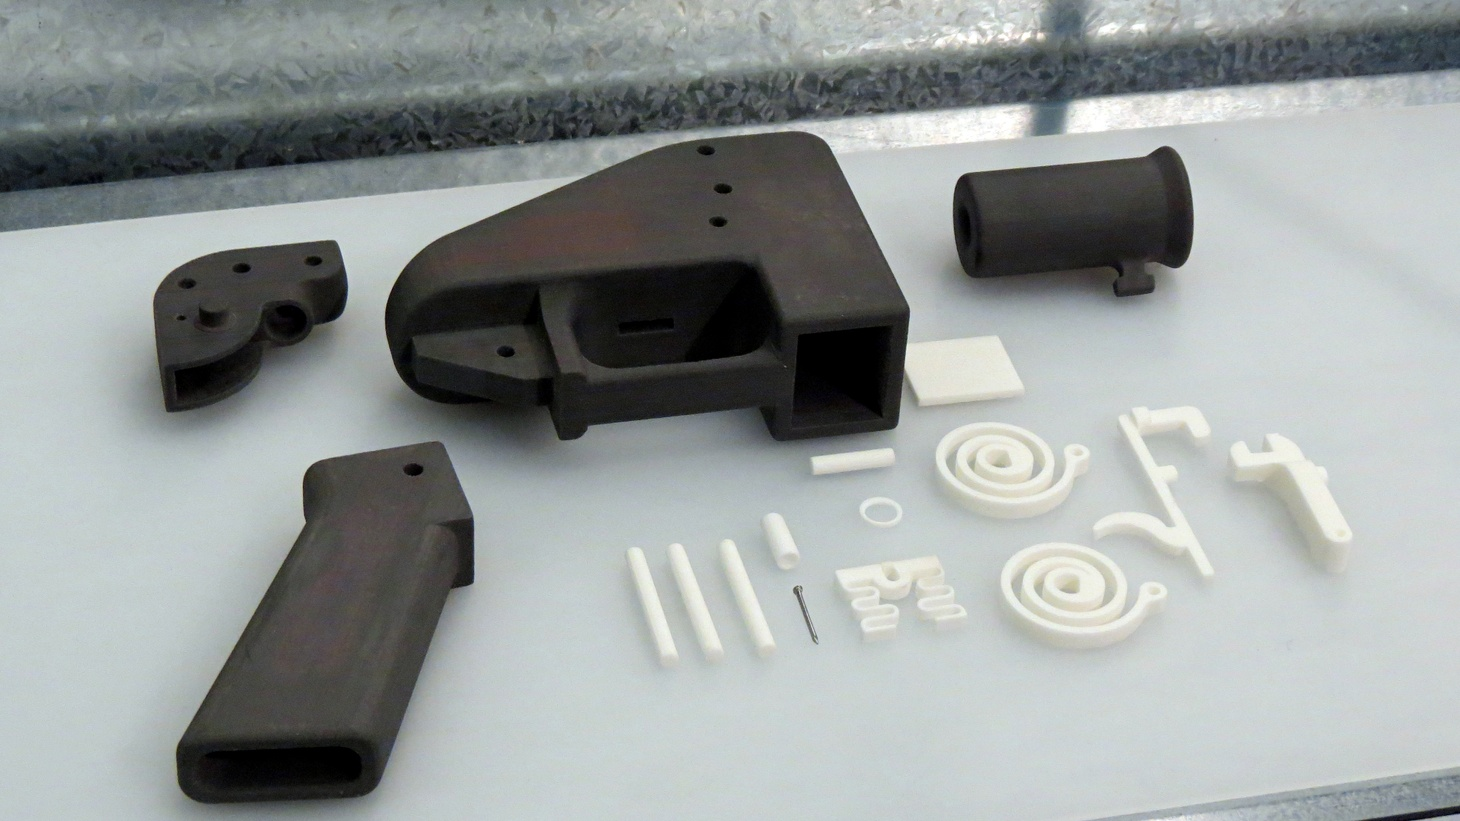 The Constitution says yes, but common sense says no — says the lawyer representing the 3D-printed gun blueprint maker